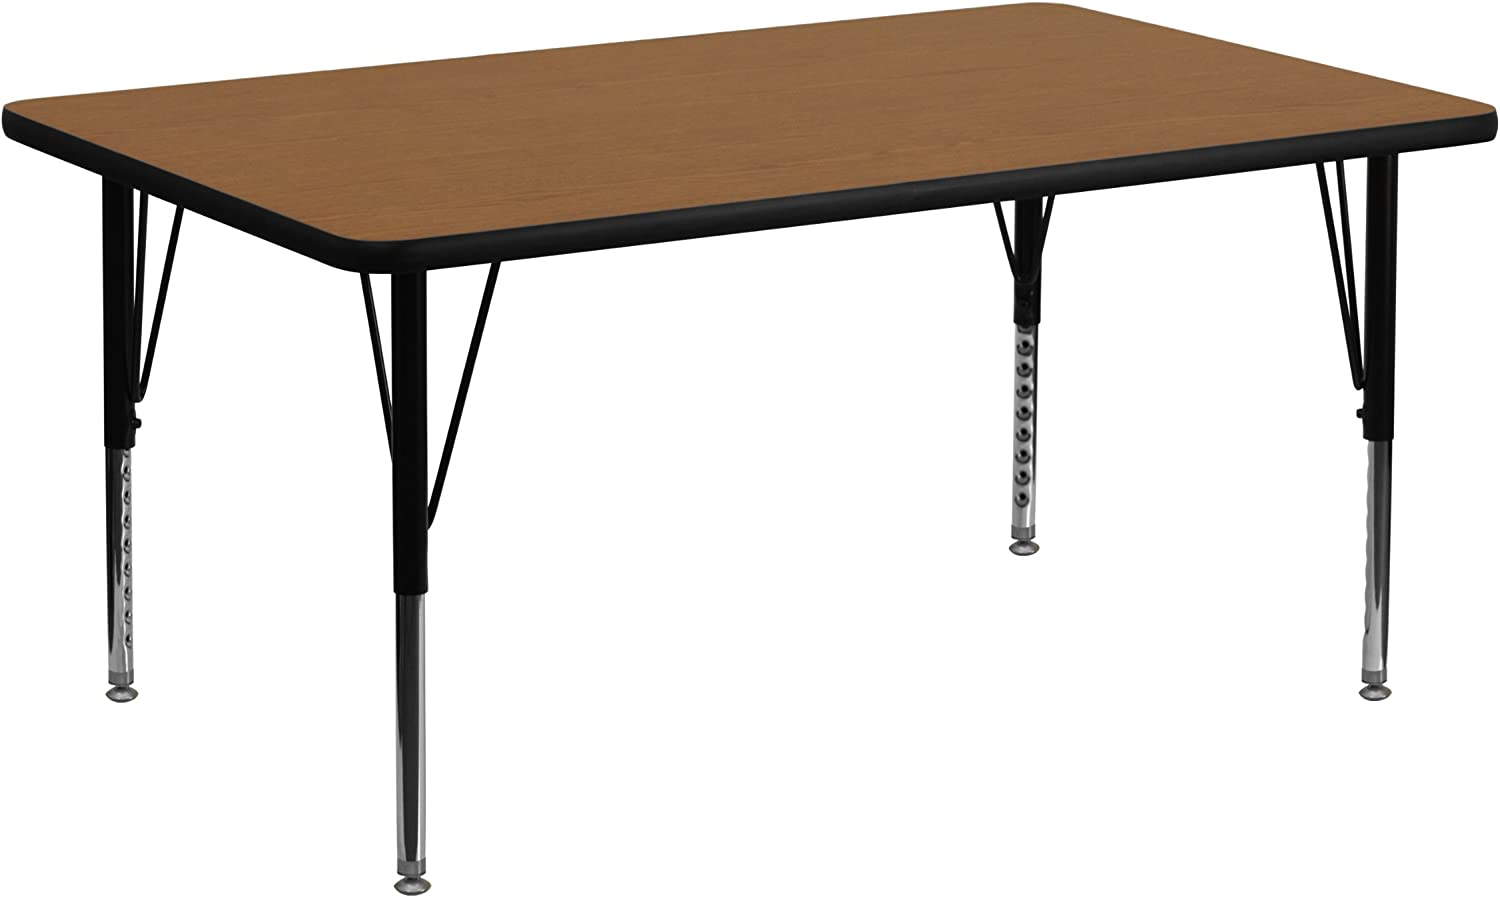 electronic consumers XU-A2448-REC-RED-T-A-GG 24W x 48L Rectangular Activity Table with Red Thermal Fused Laminate Top and Standard Height Adjustable Legs